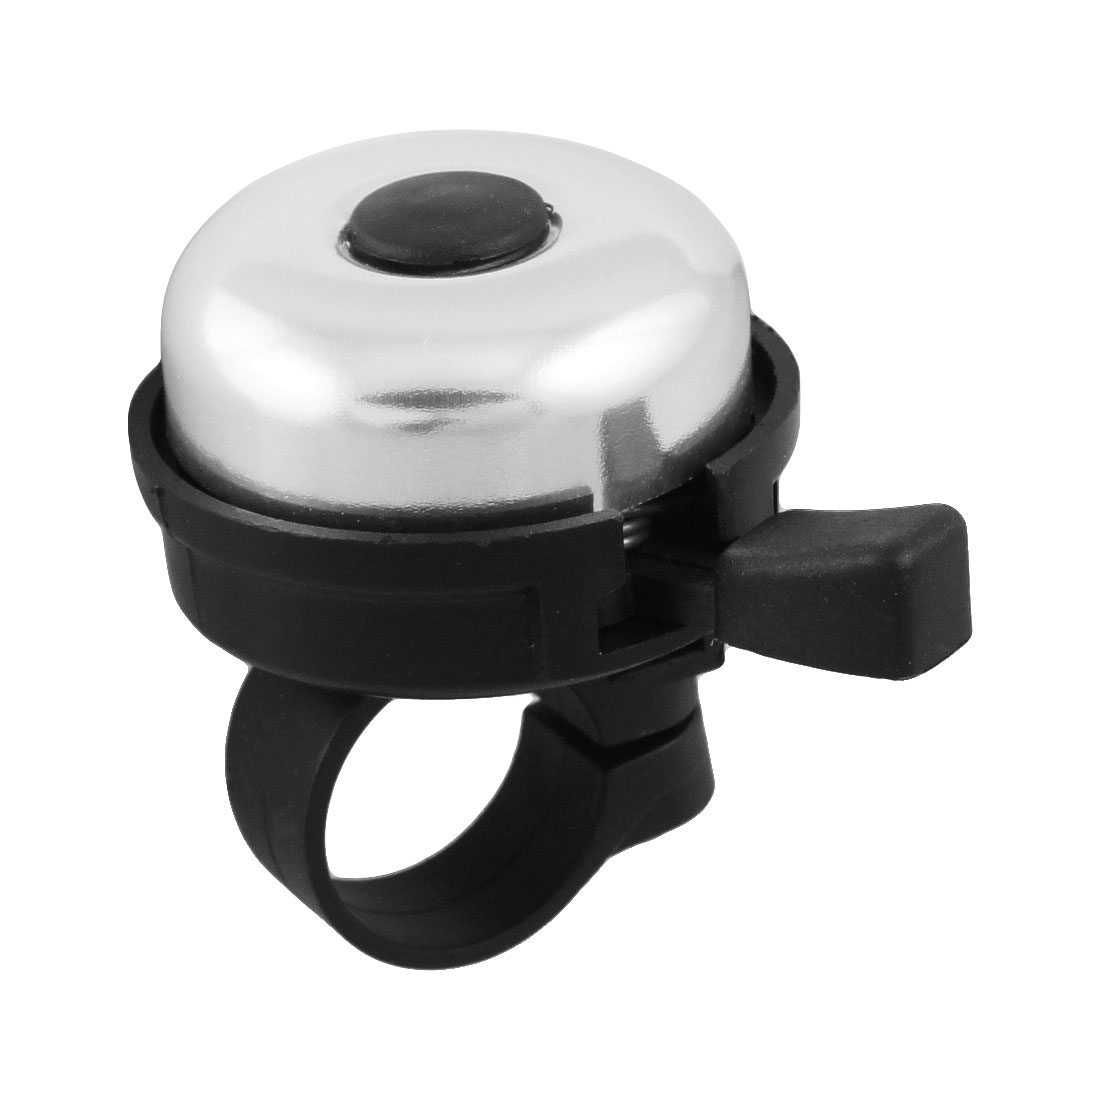 Bike Bicycle Bell Ring Round Black Silver Tone Plastic Metal Sound Alarm